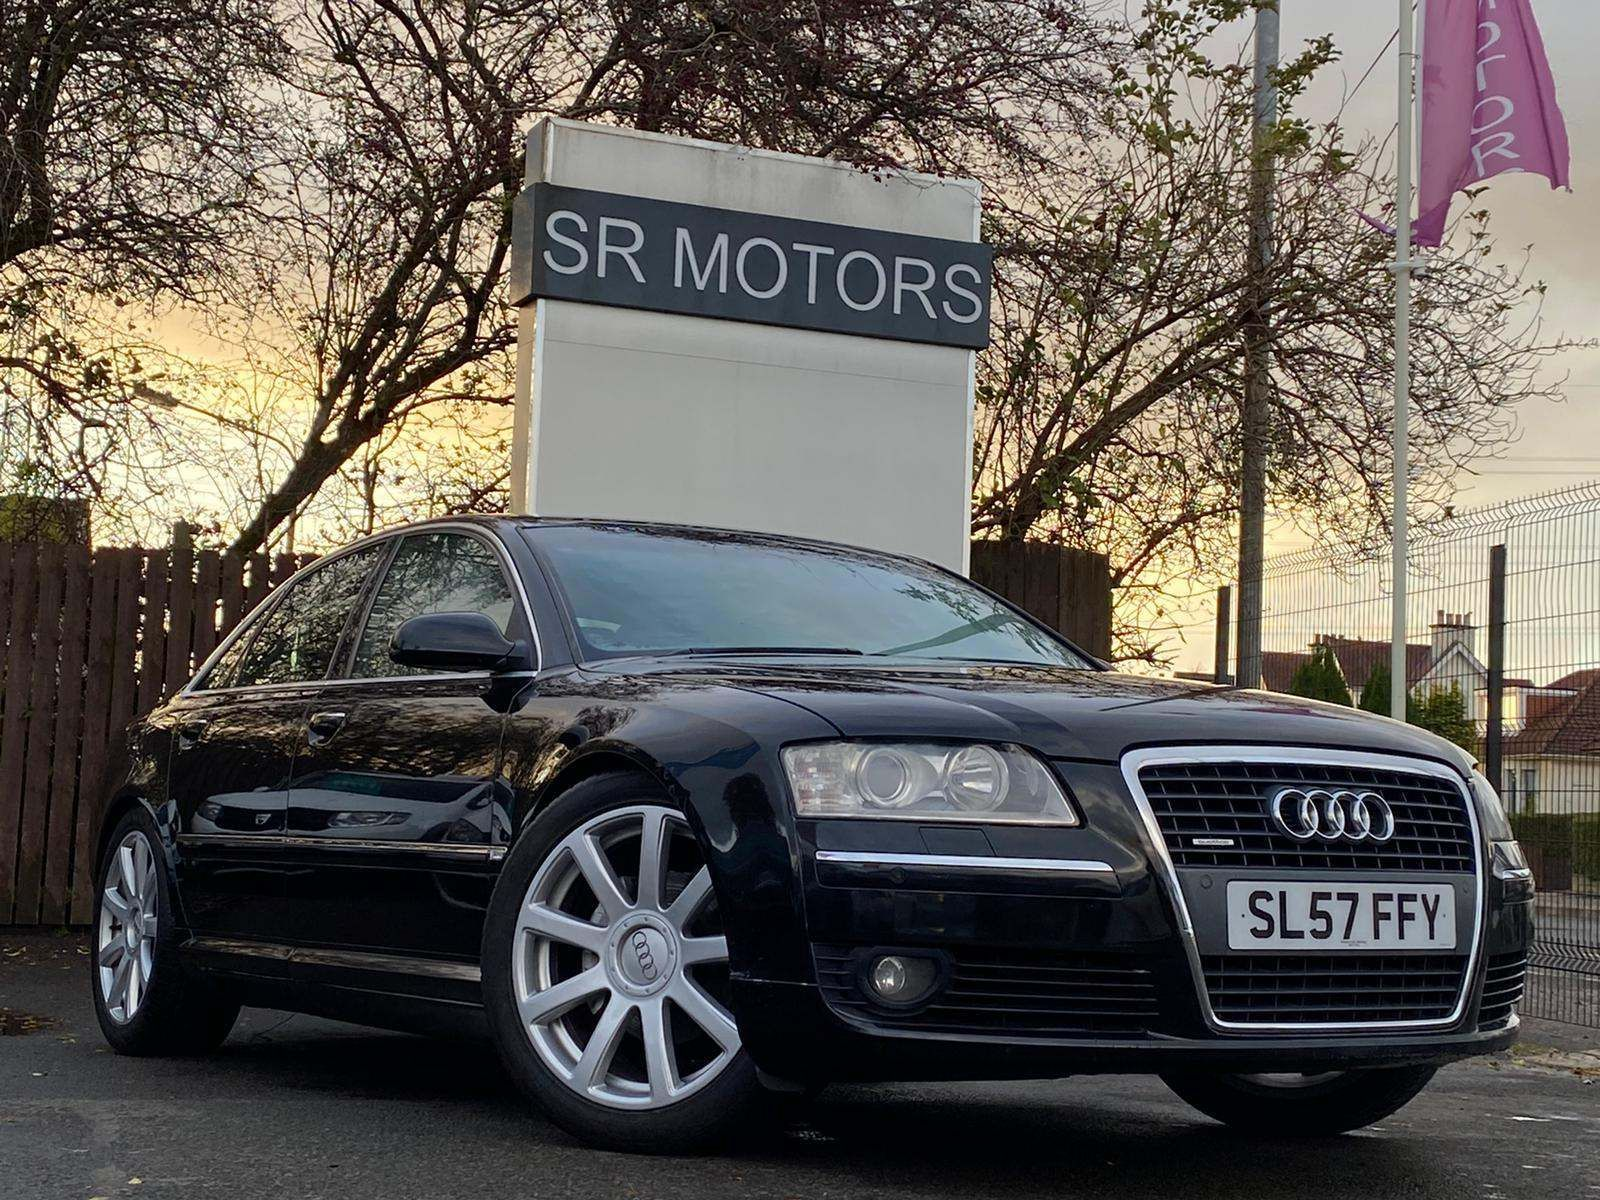 2007 Audi A8 Used Cars For Sale Autotrader Uk